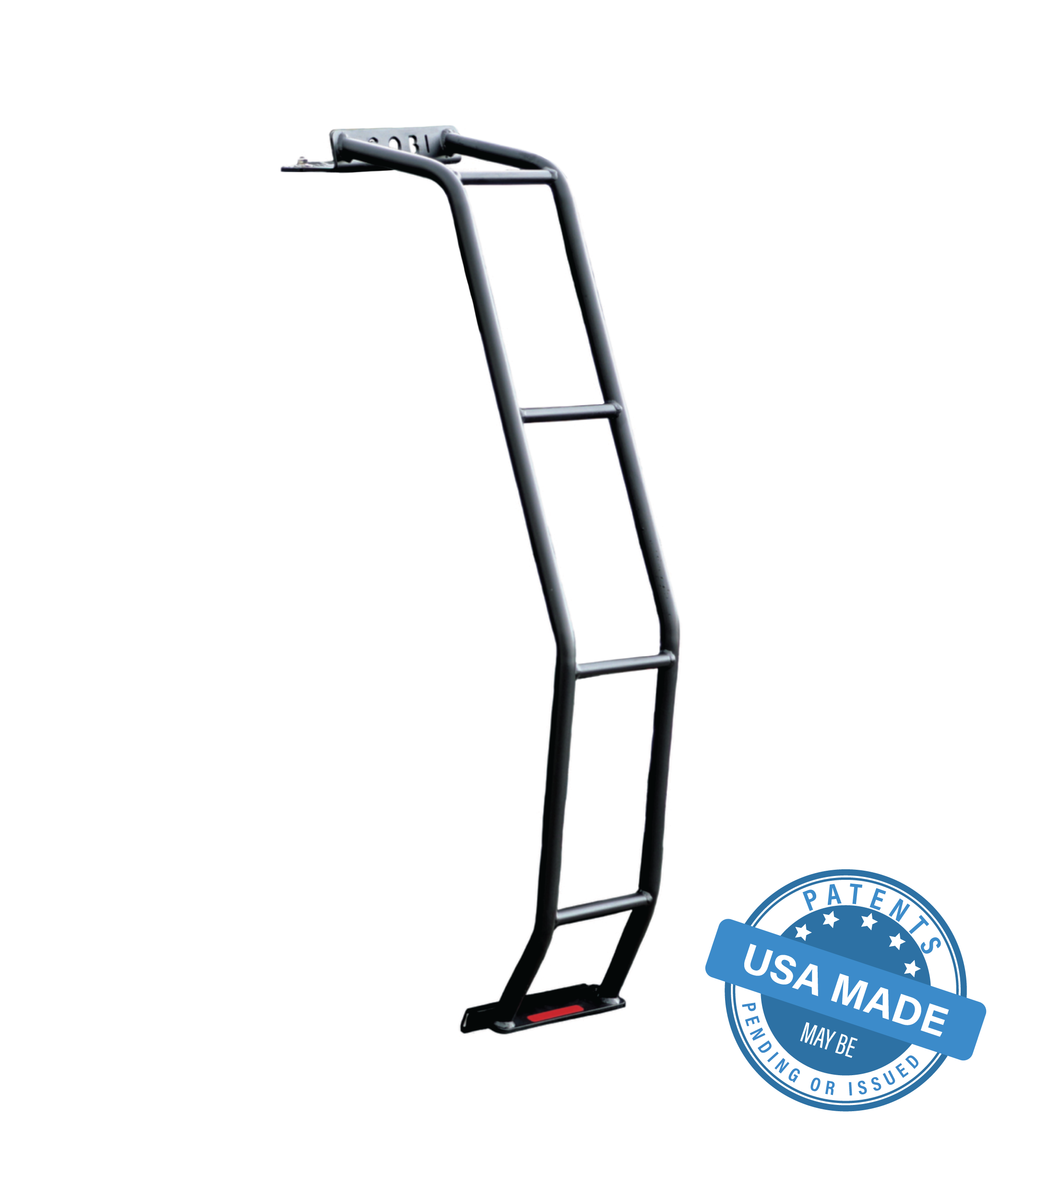 GOBI 5th Gen 4Runner TRD Pro Ladder; Driver Side